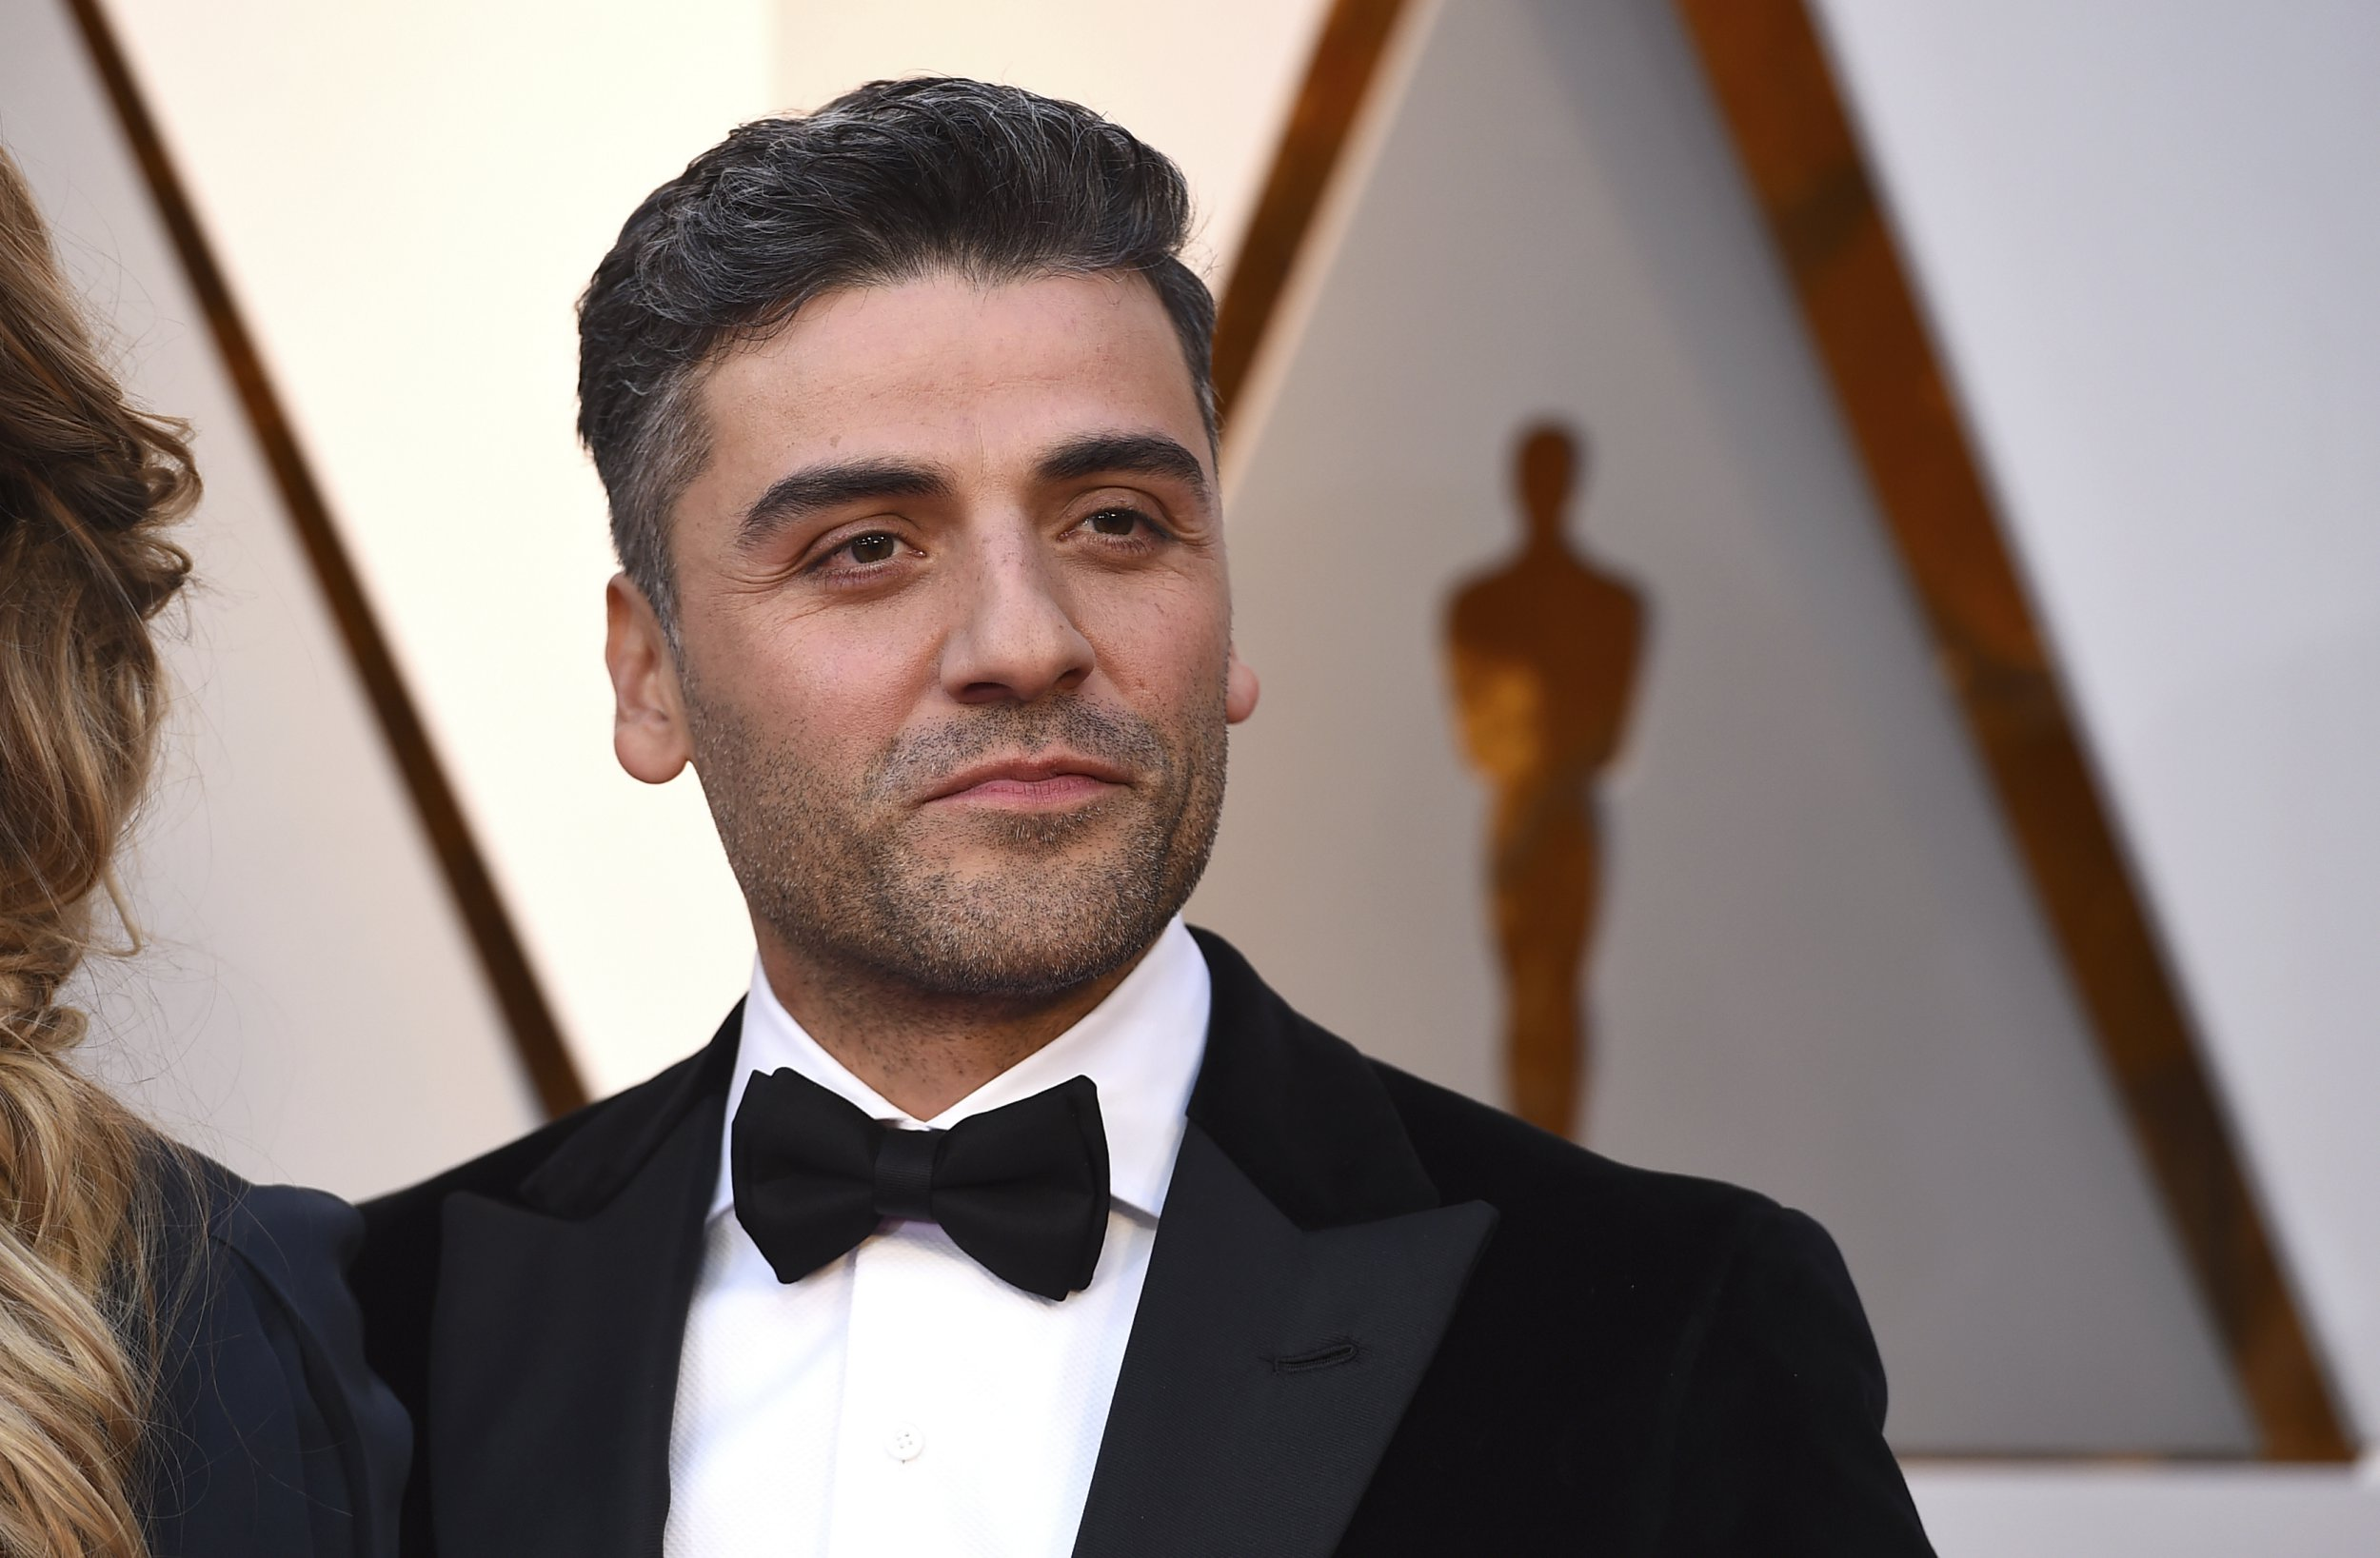 Oscar Isaac arrives at the Oscars on Sunday, March 4, 2018, at the Dolby Theatre in Los Angeles. (Photo by Jordan Strauss/Invision/AP)